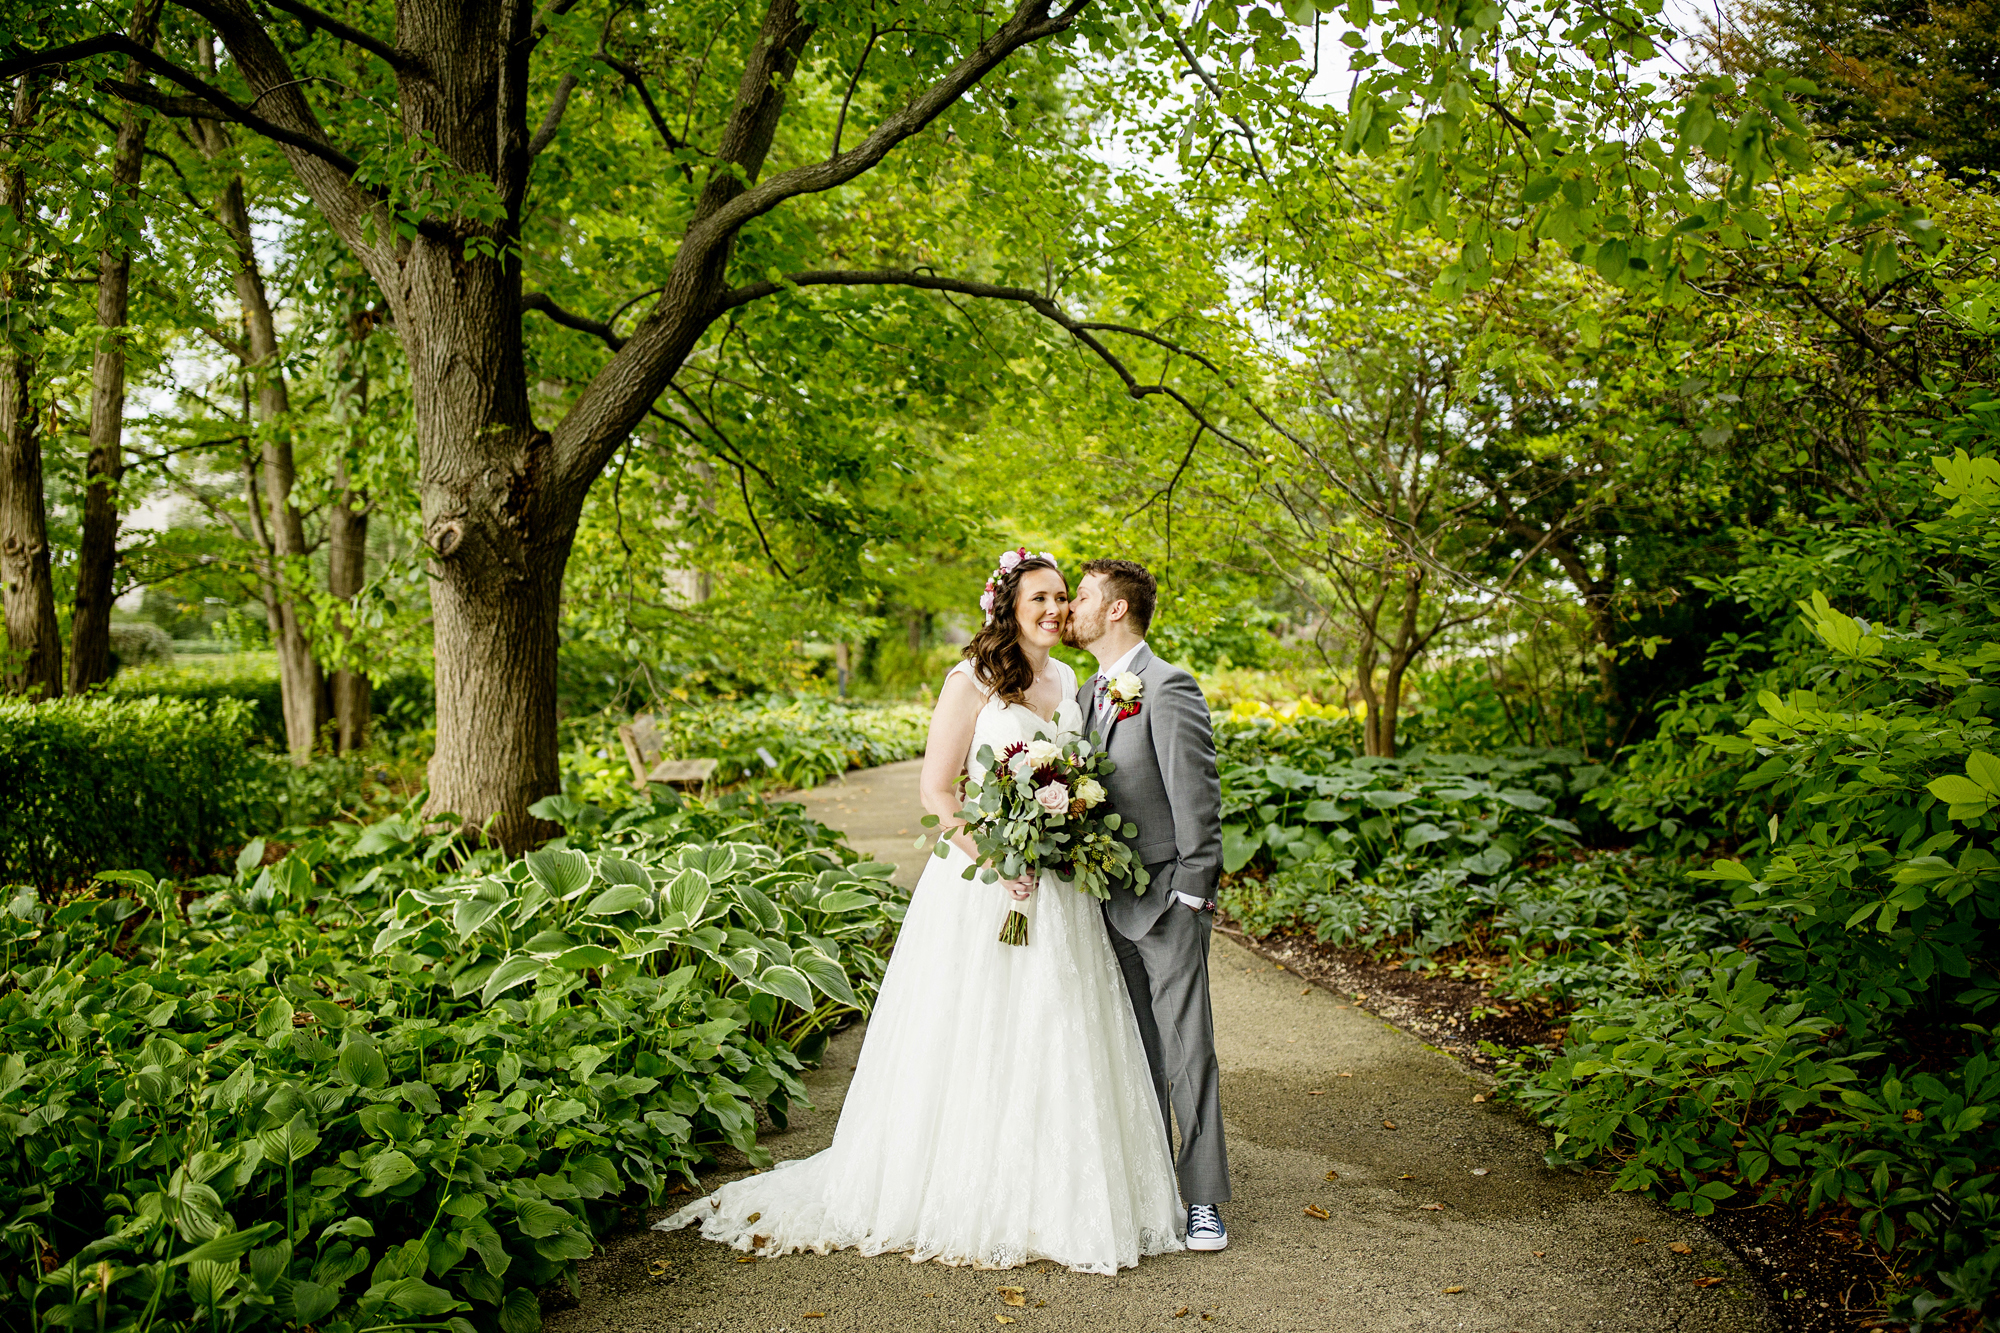 Seriously_Sabrina_Photography_Lisle_Illinois_Morton_Arboretum_Wedding_Day_Gowen1.jpg